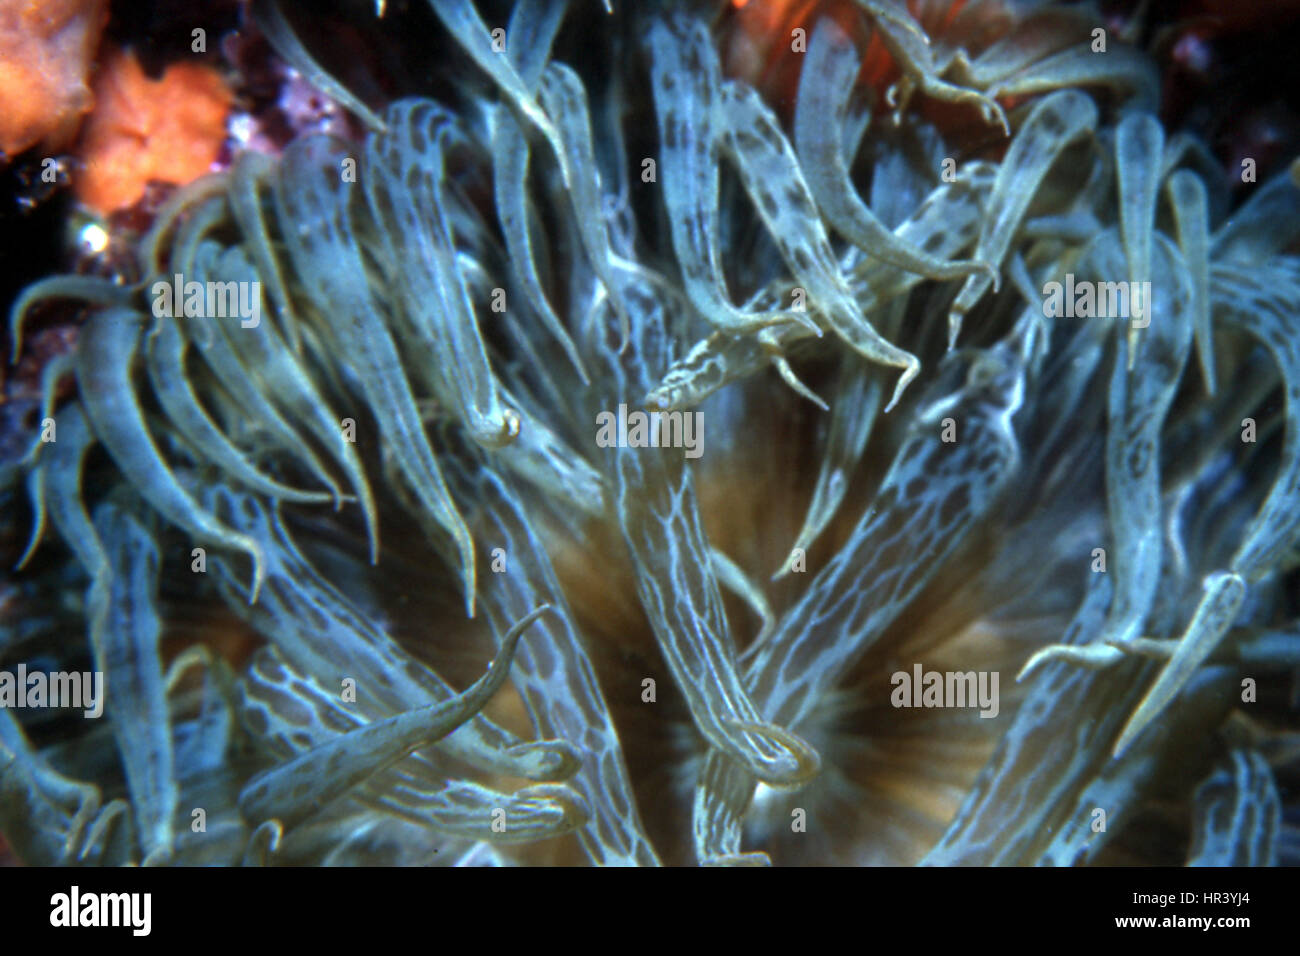 Beautiful Sea anemone - Stock Image